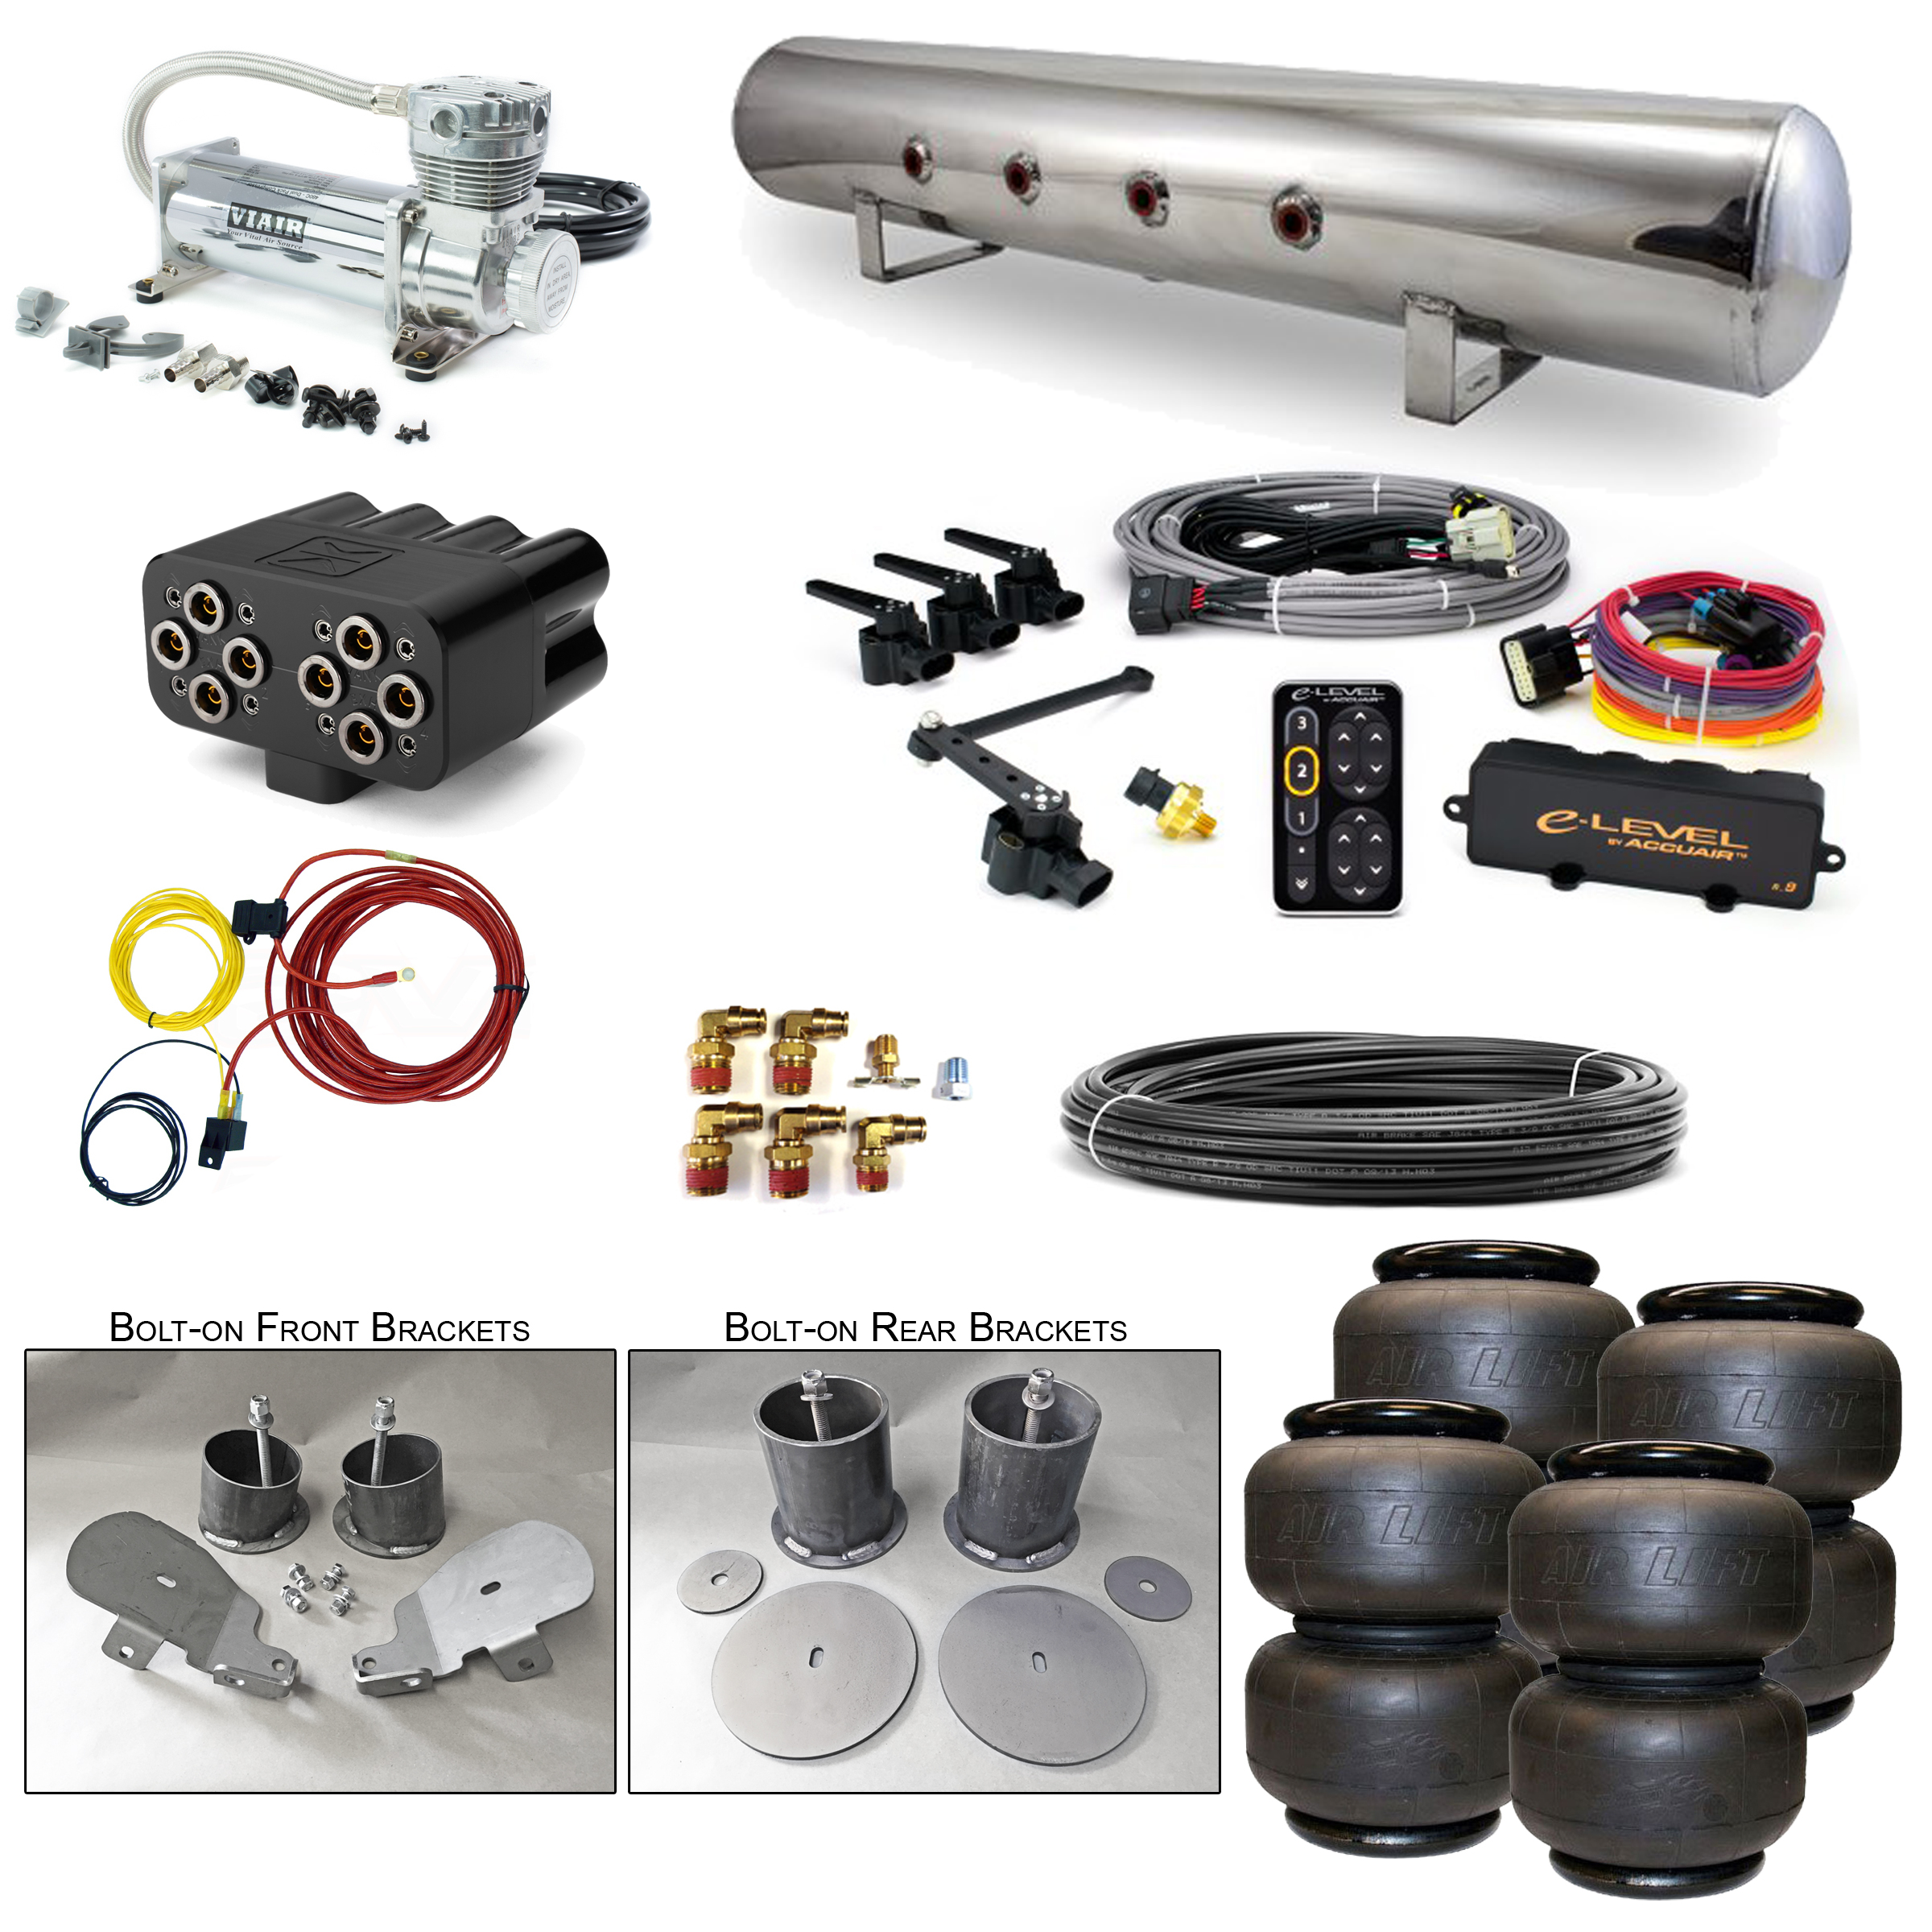 Stage 3 Air Suspension System With Accuair Elevel Management 65 70 1965 Chevy Impala Rear Wiring Home Systems Gm B Body